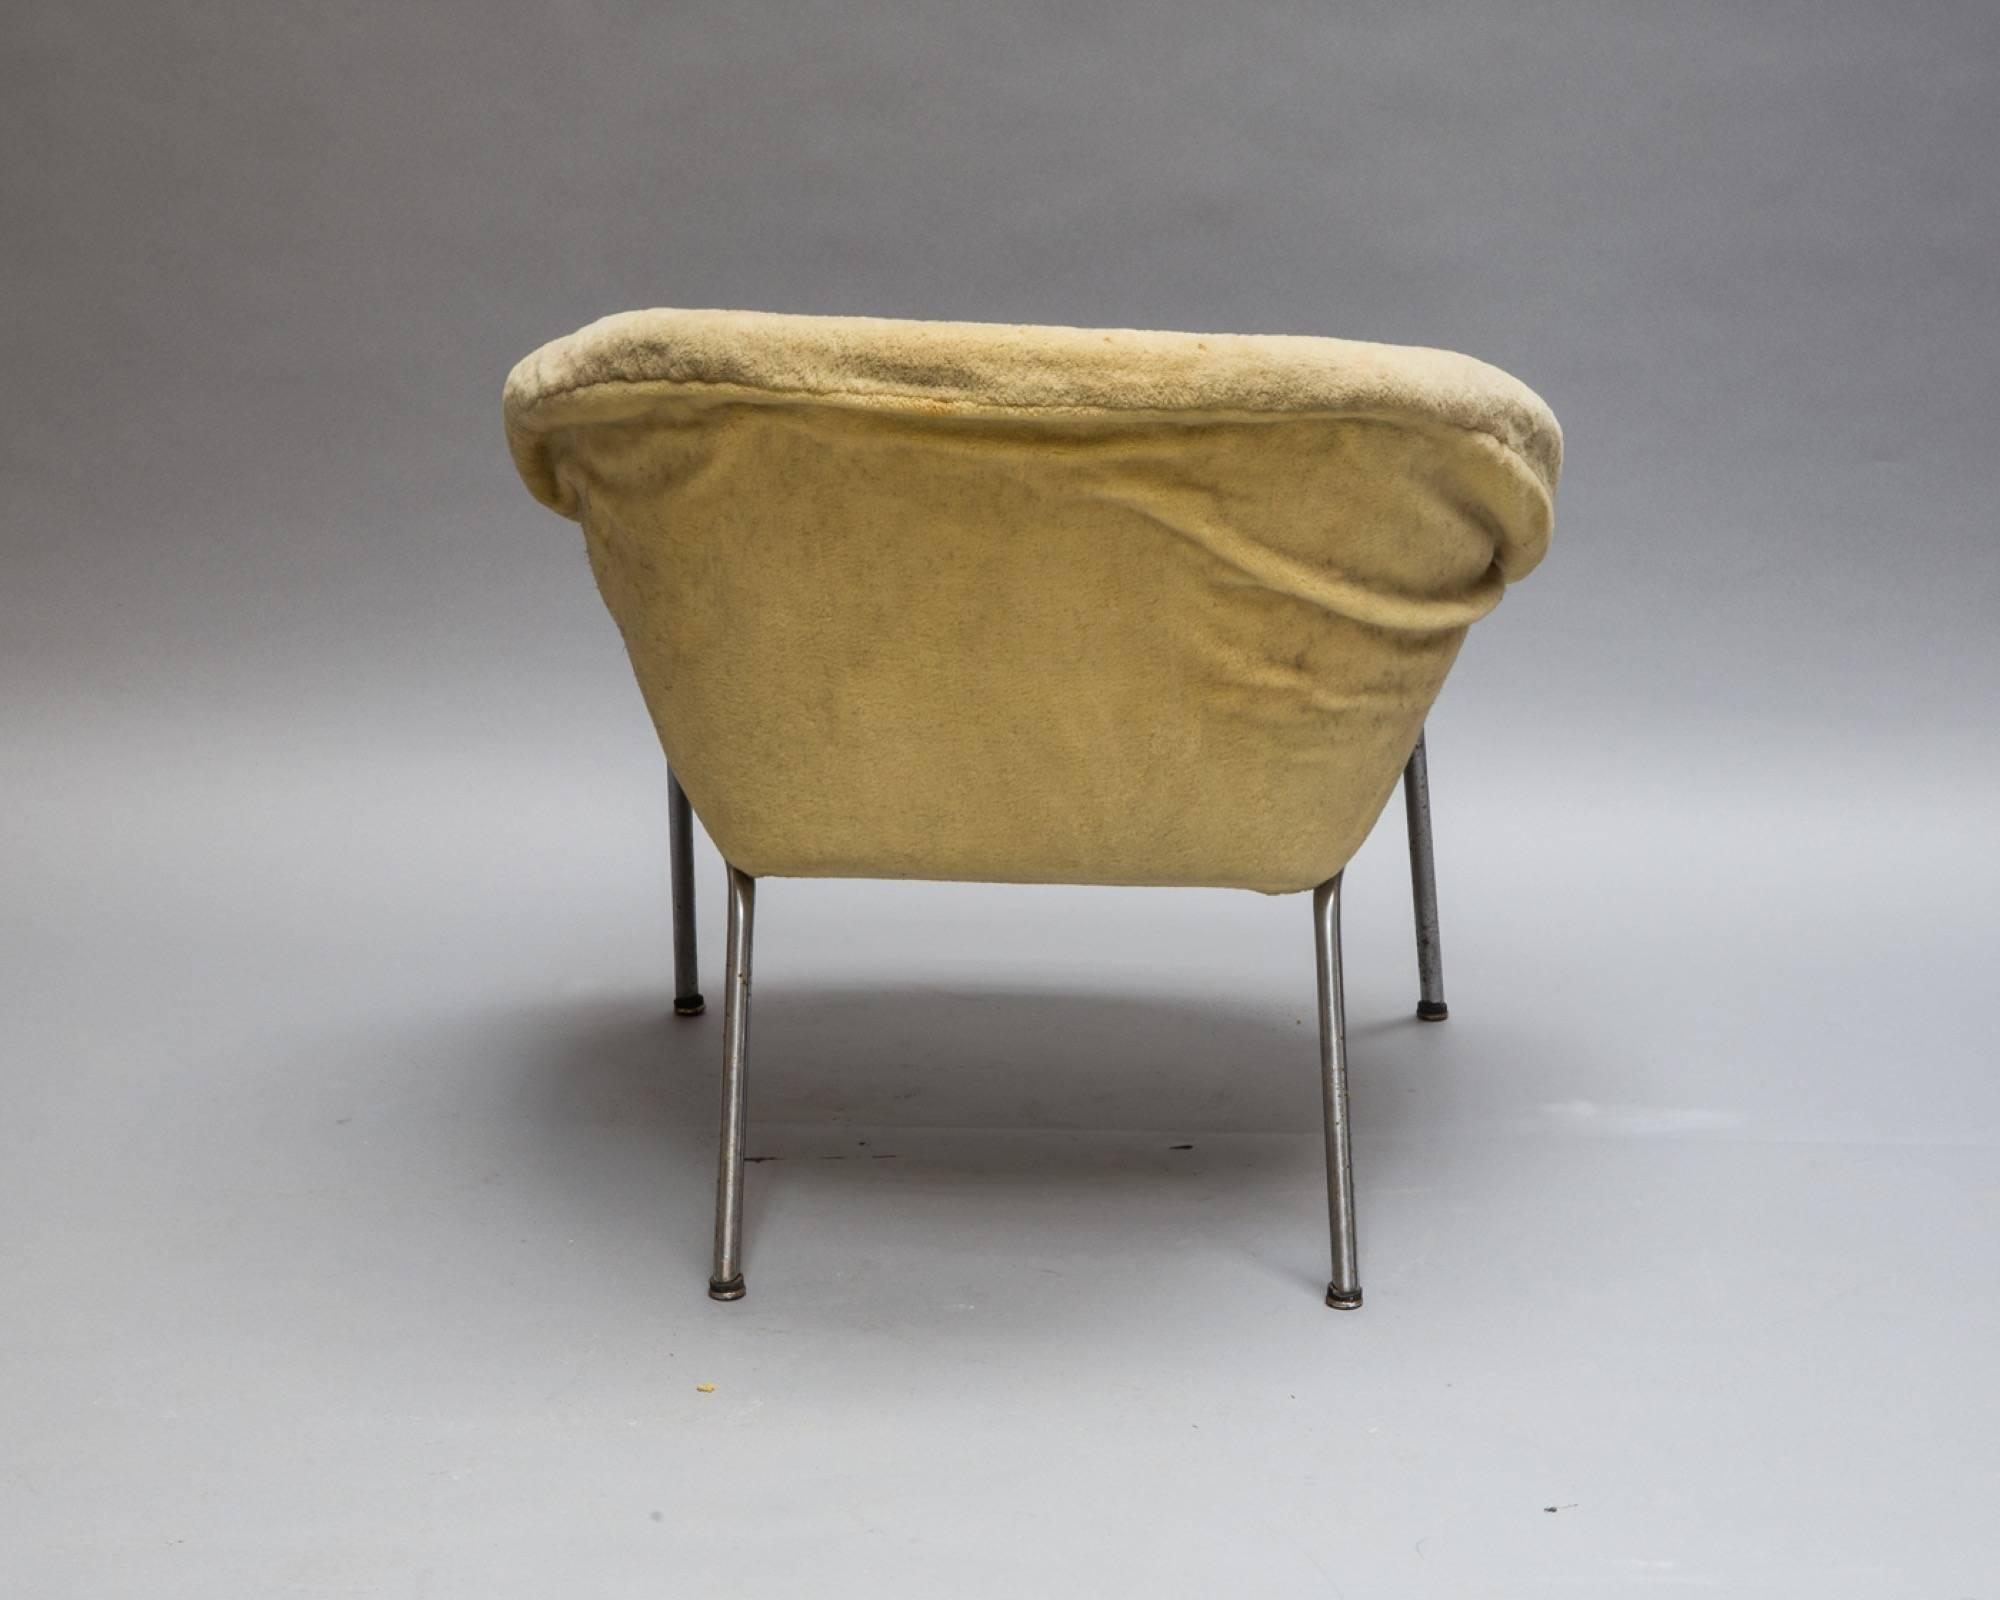 Incredible Knoll Sessel 369 For Walter Knoll Decaso